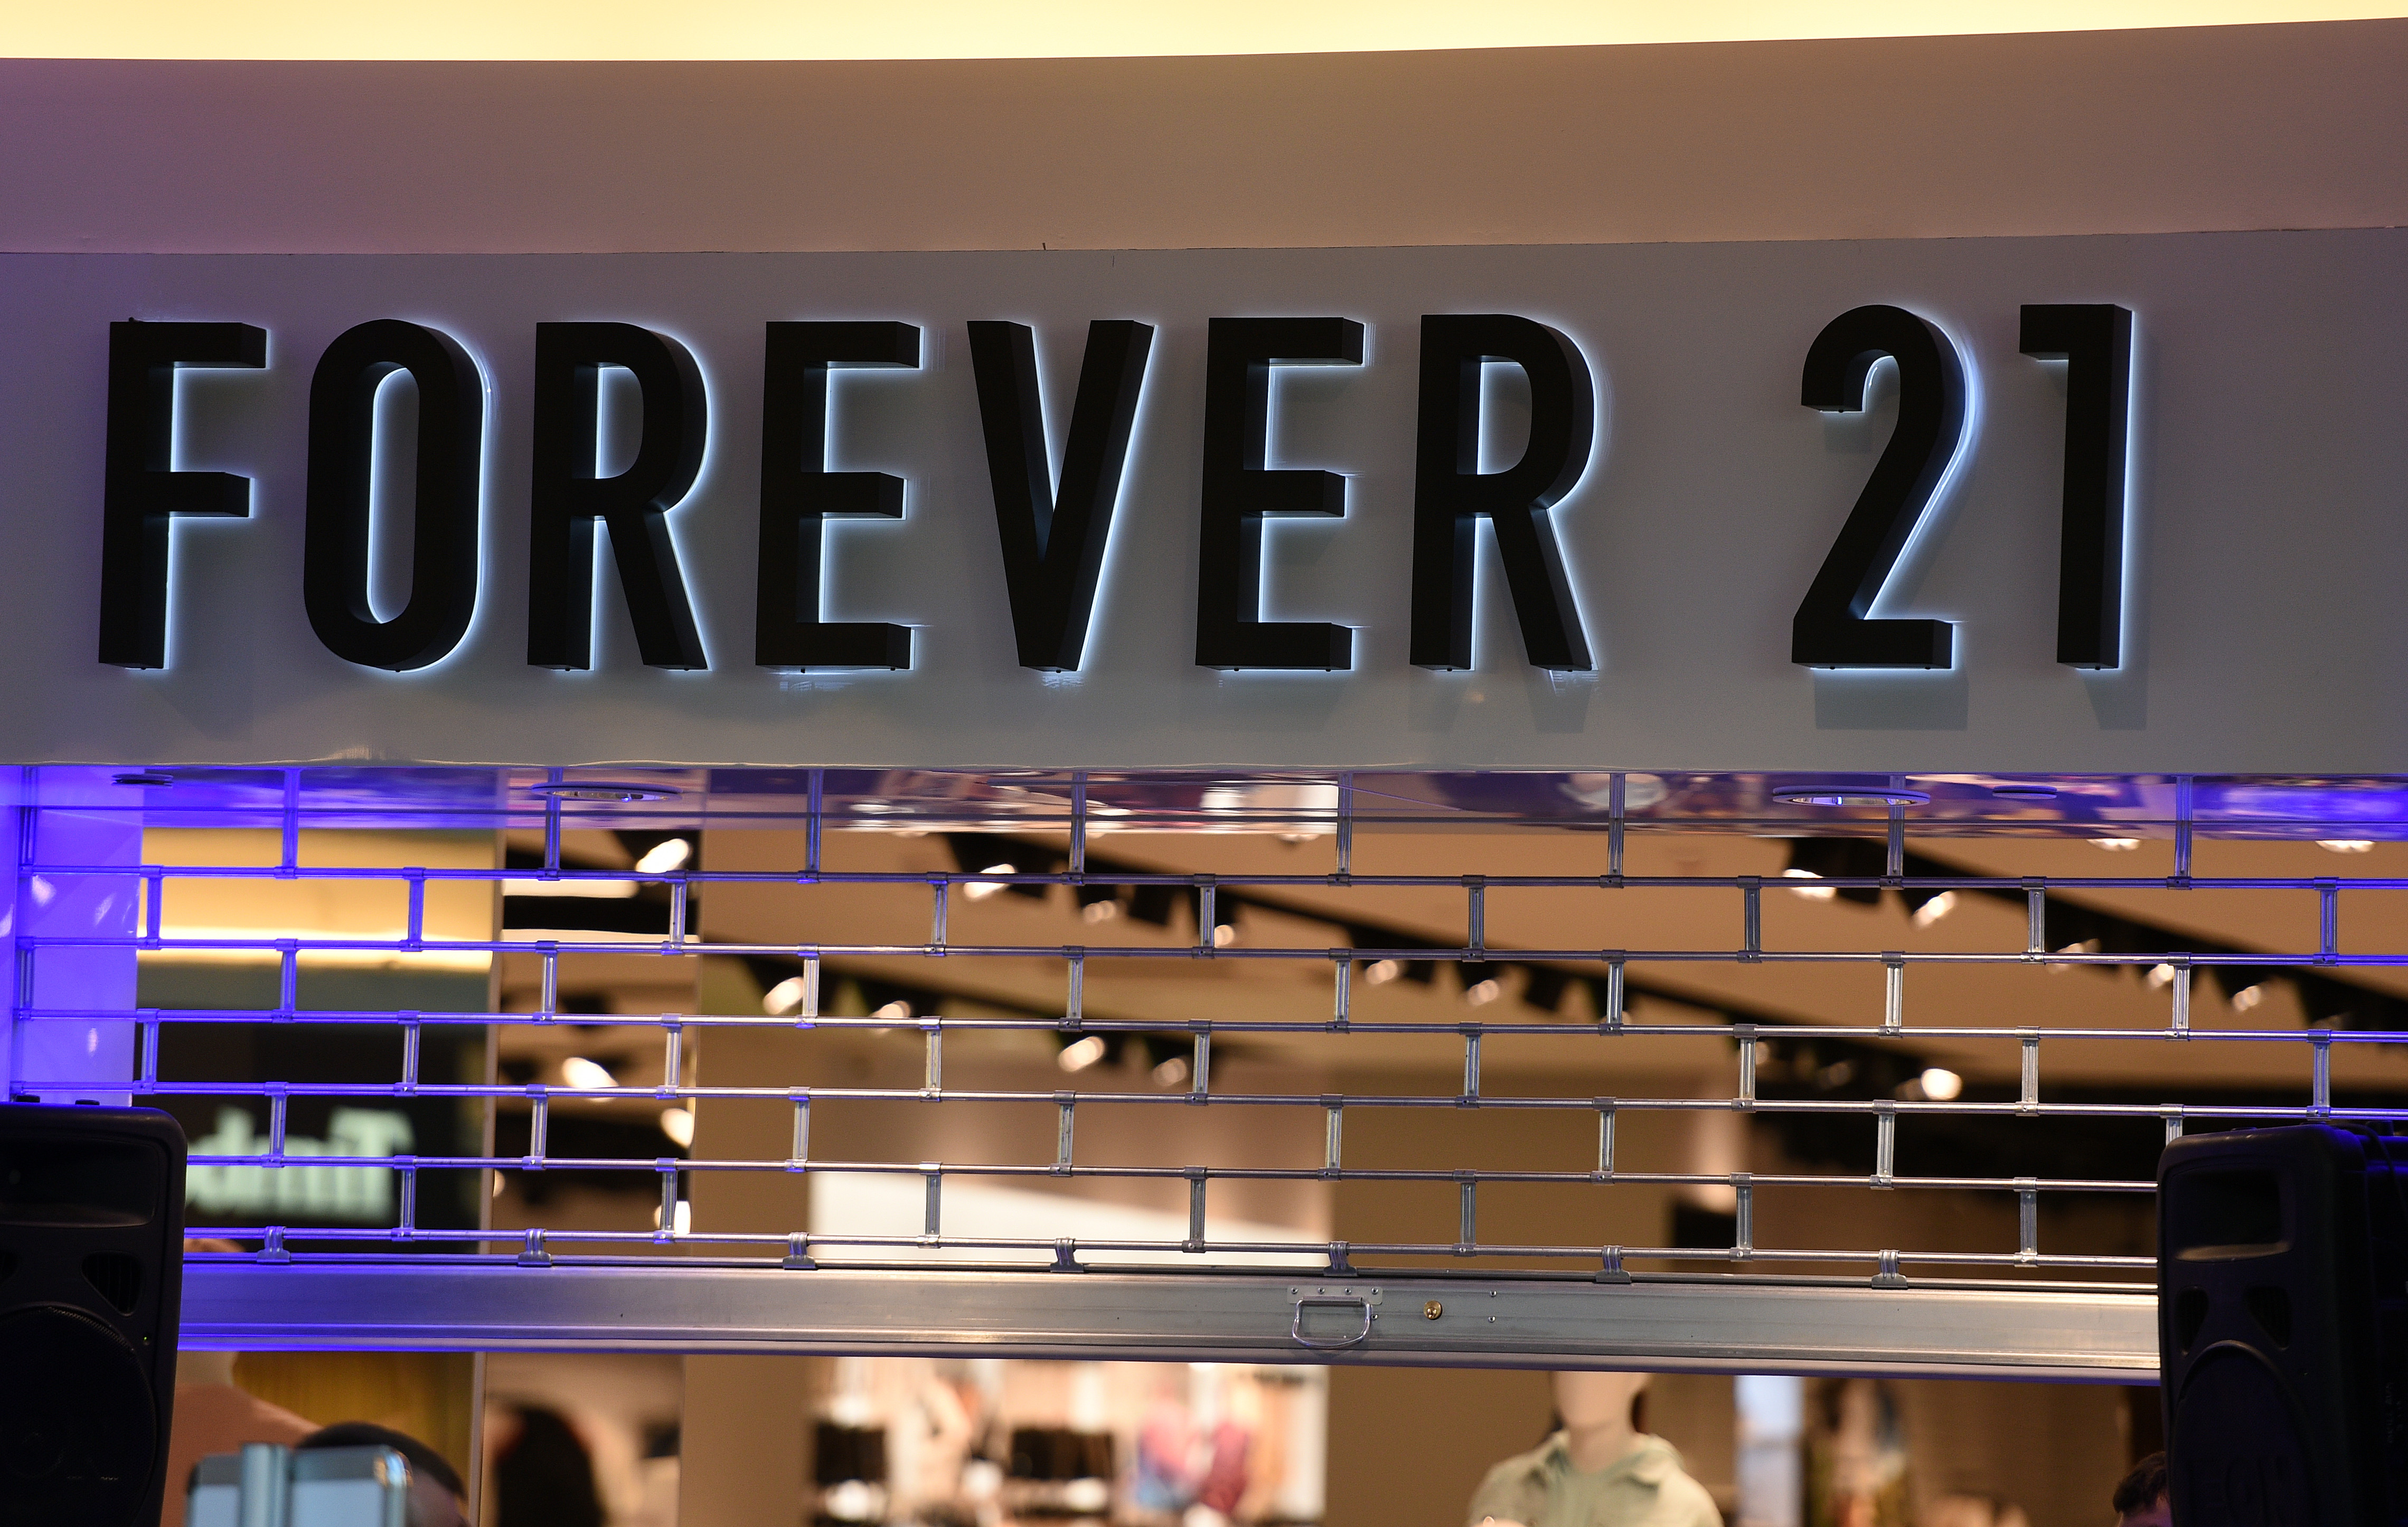 Forever 21 shop logo during the opening of the Forever 21 shop at Zlote Tarasy in Warsaw, Poland on March 25, 2017.